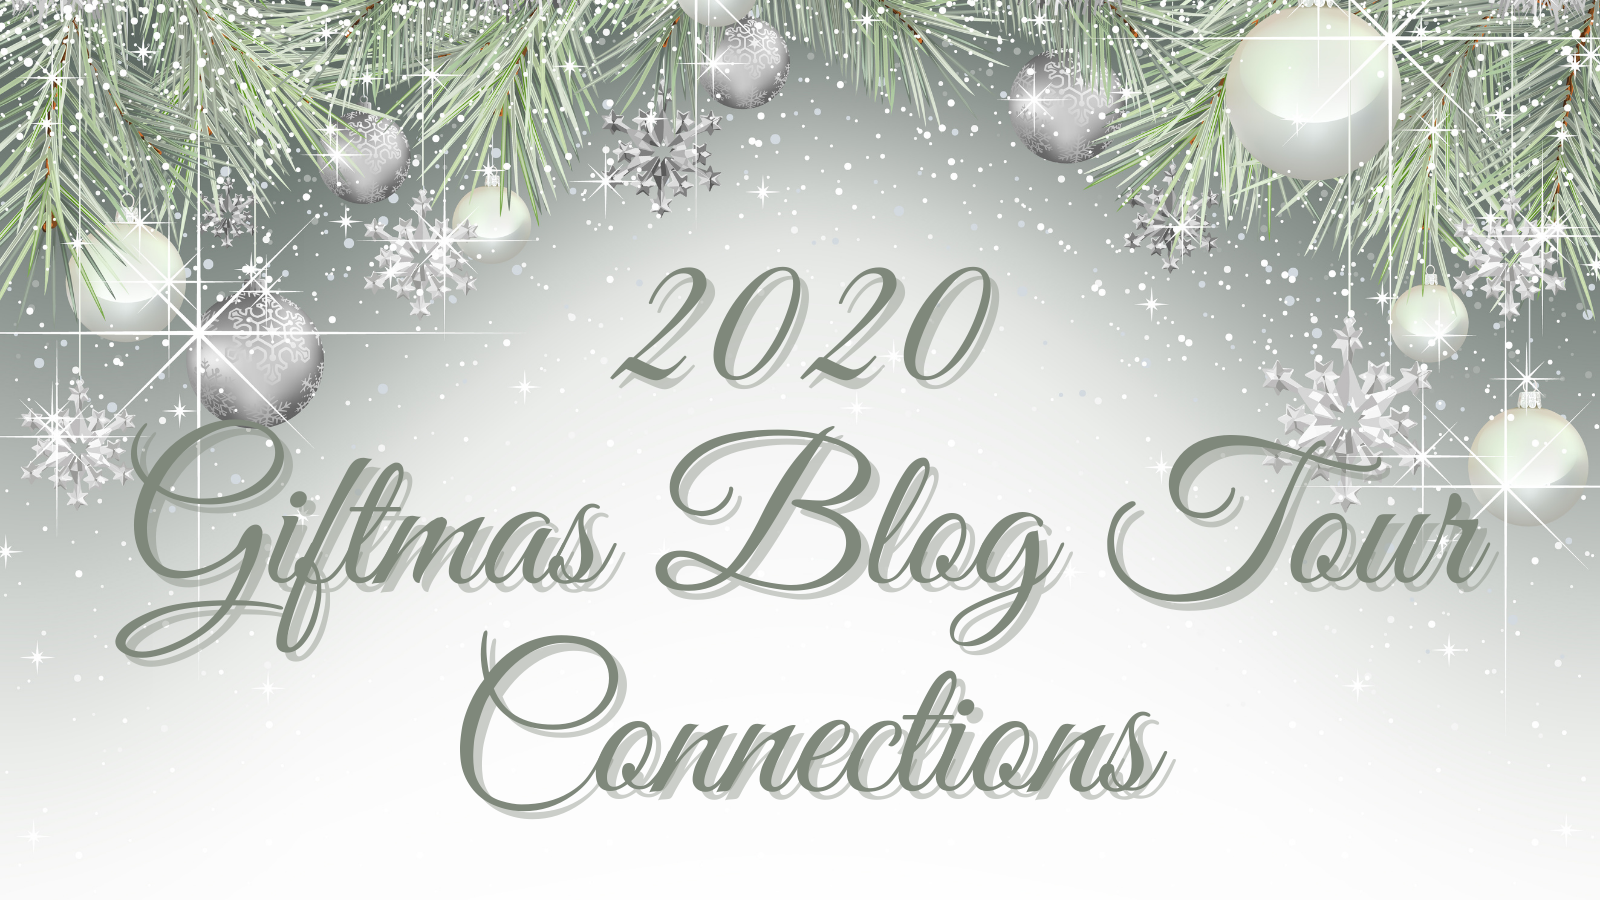 Giftmas 2020 connections